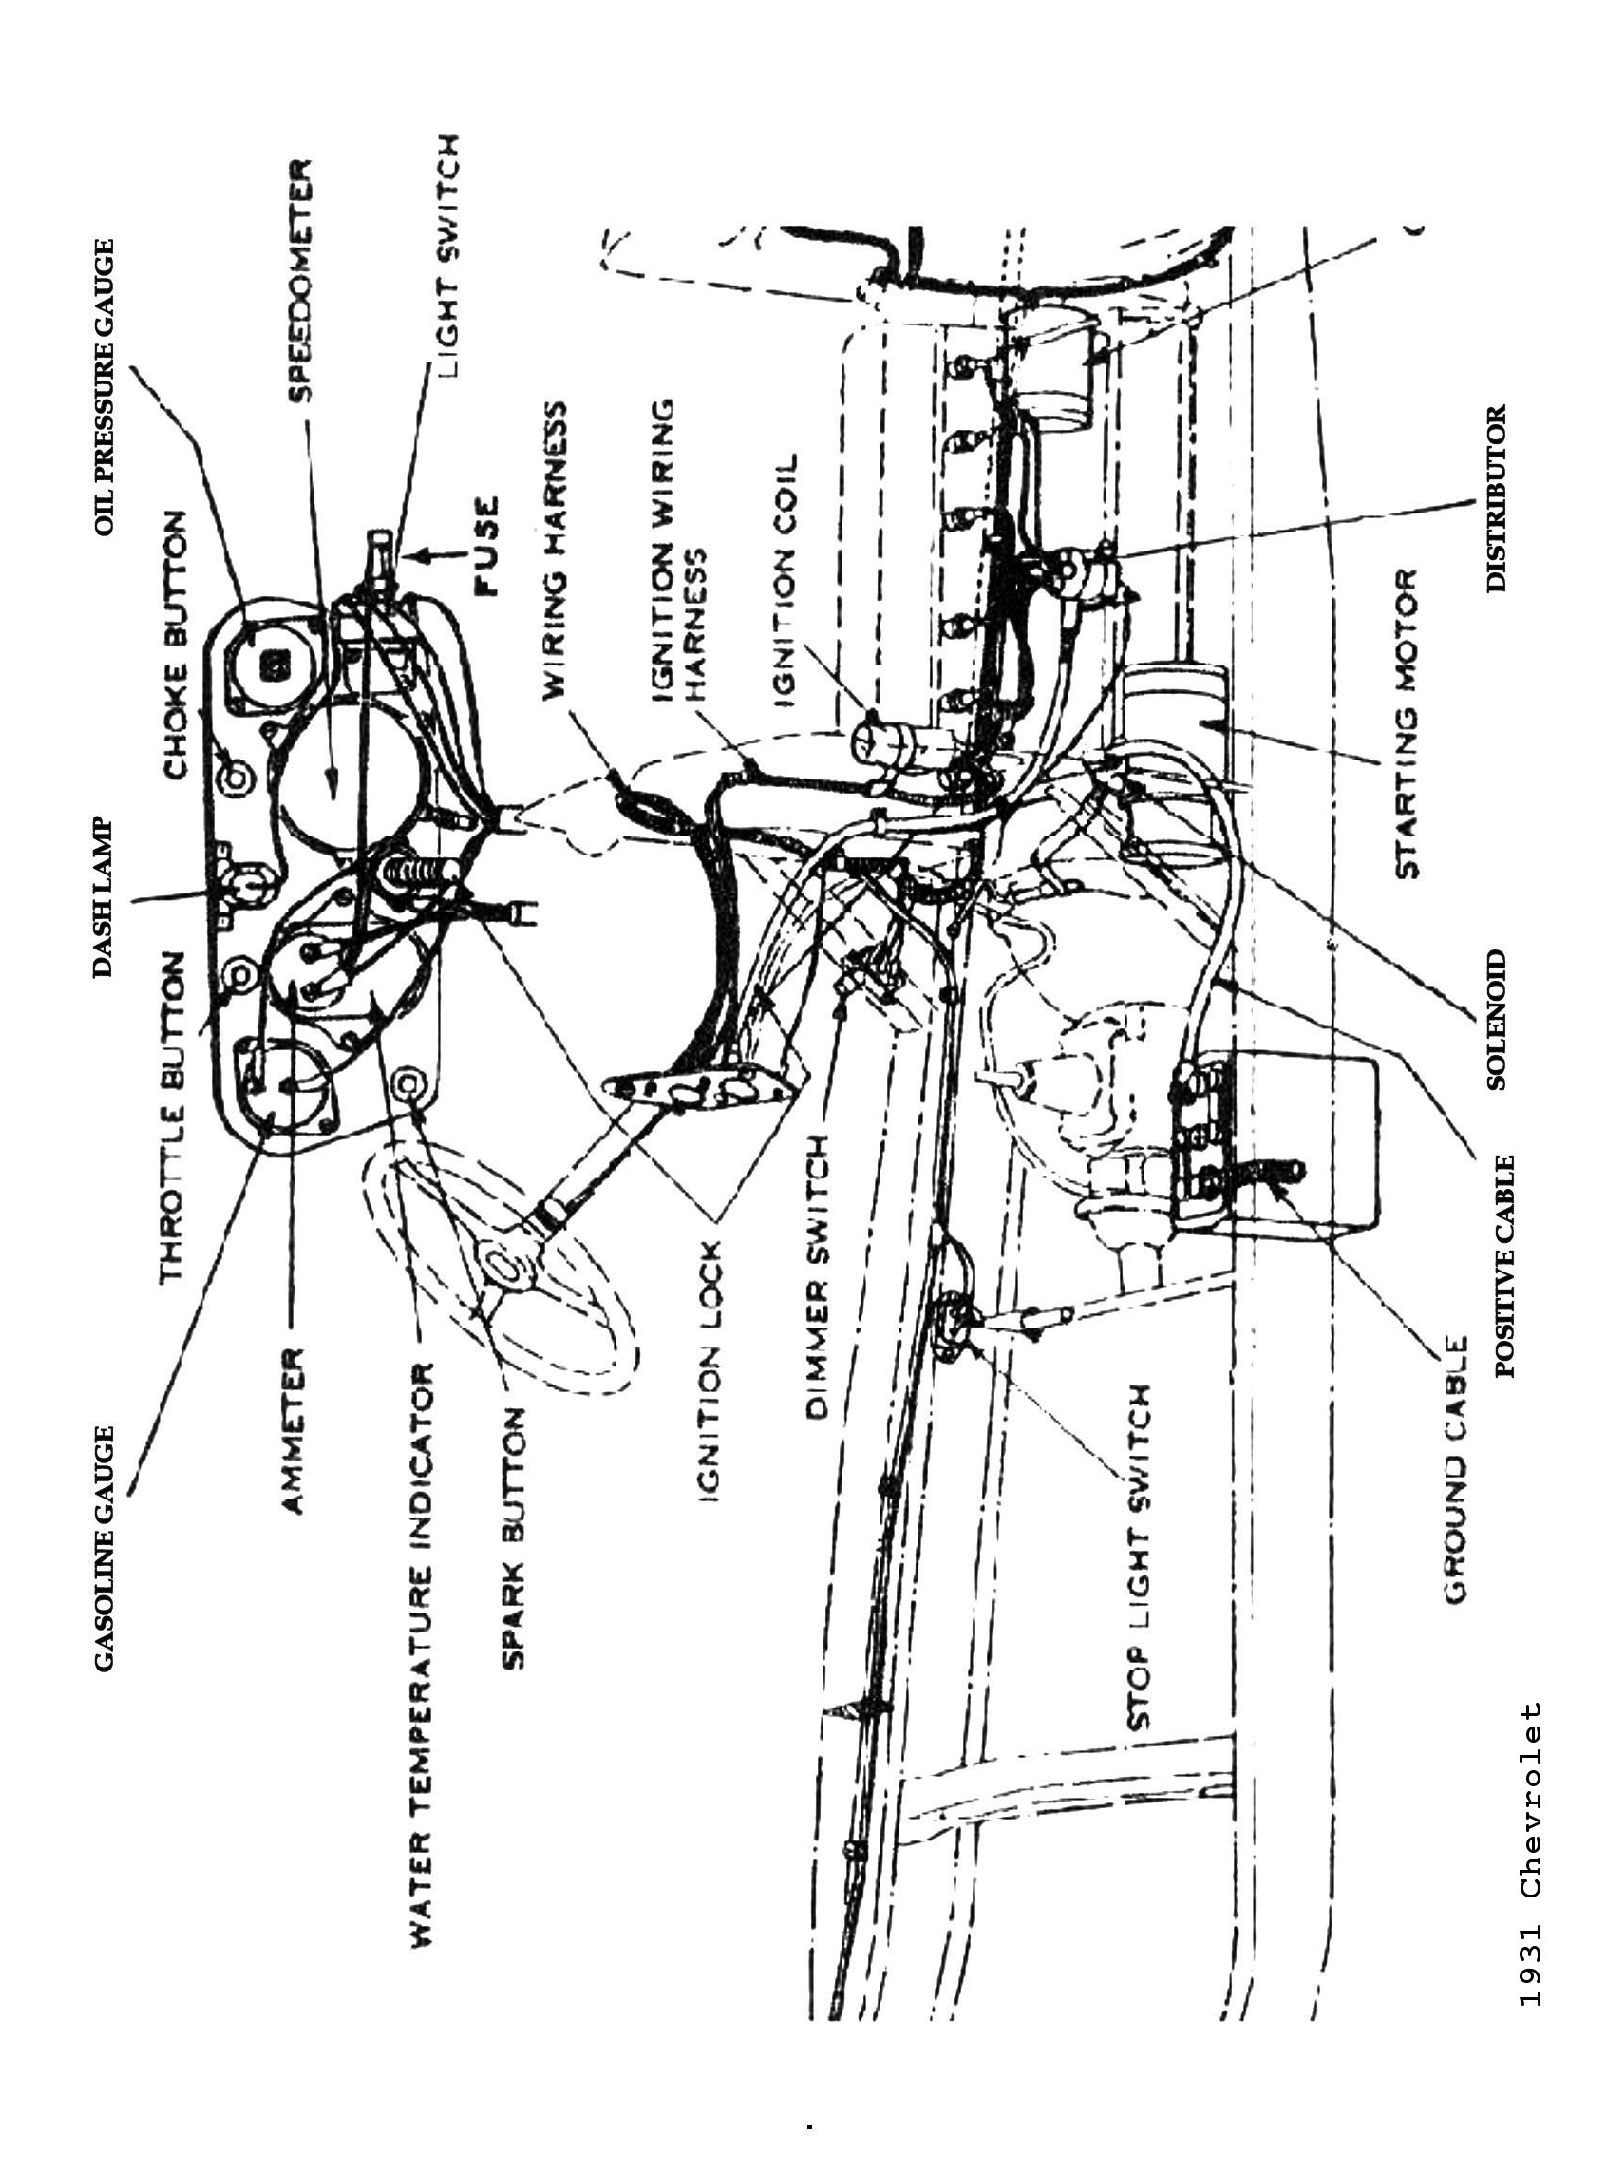 31harness chevy wiring diagrams 1931 ford model a wiring diagram at bayanpartner.co